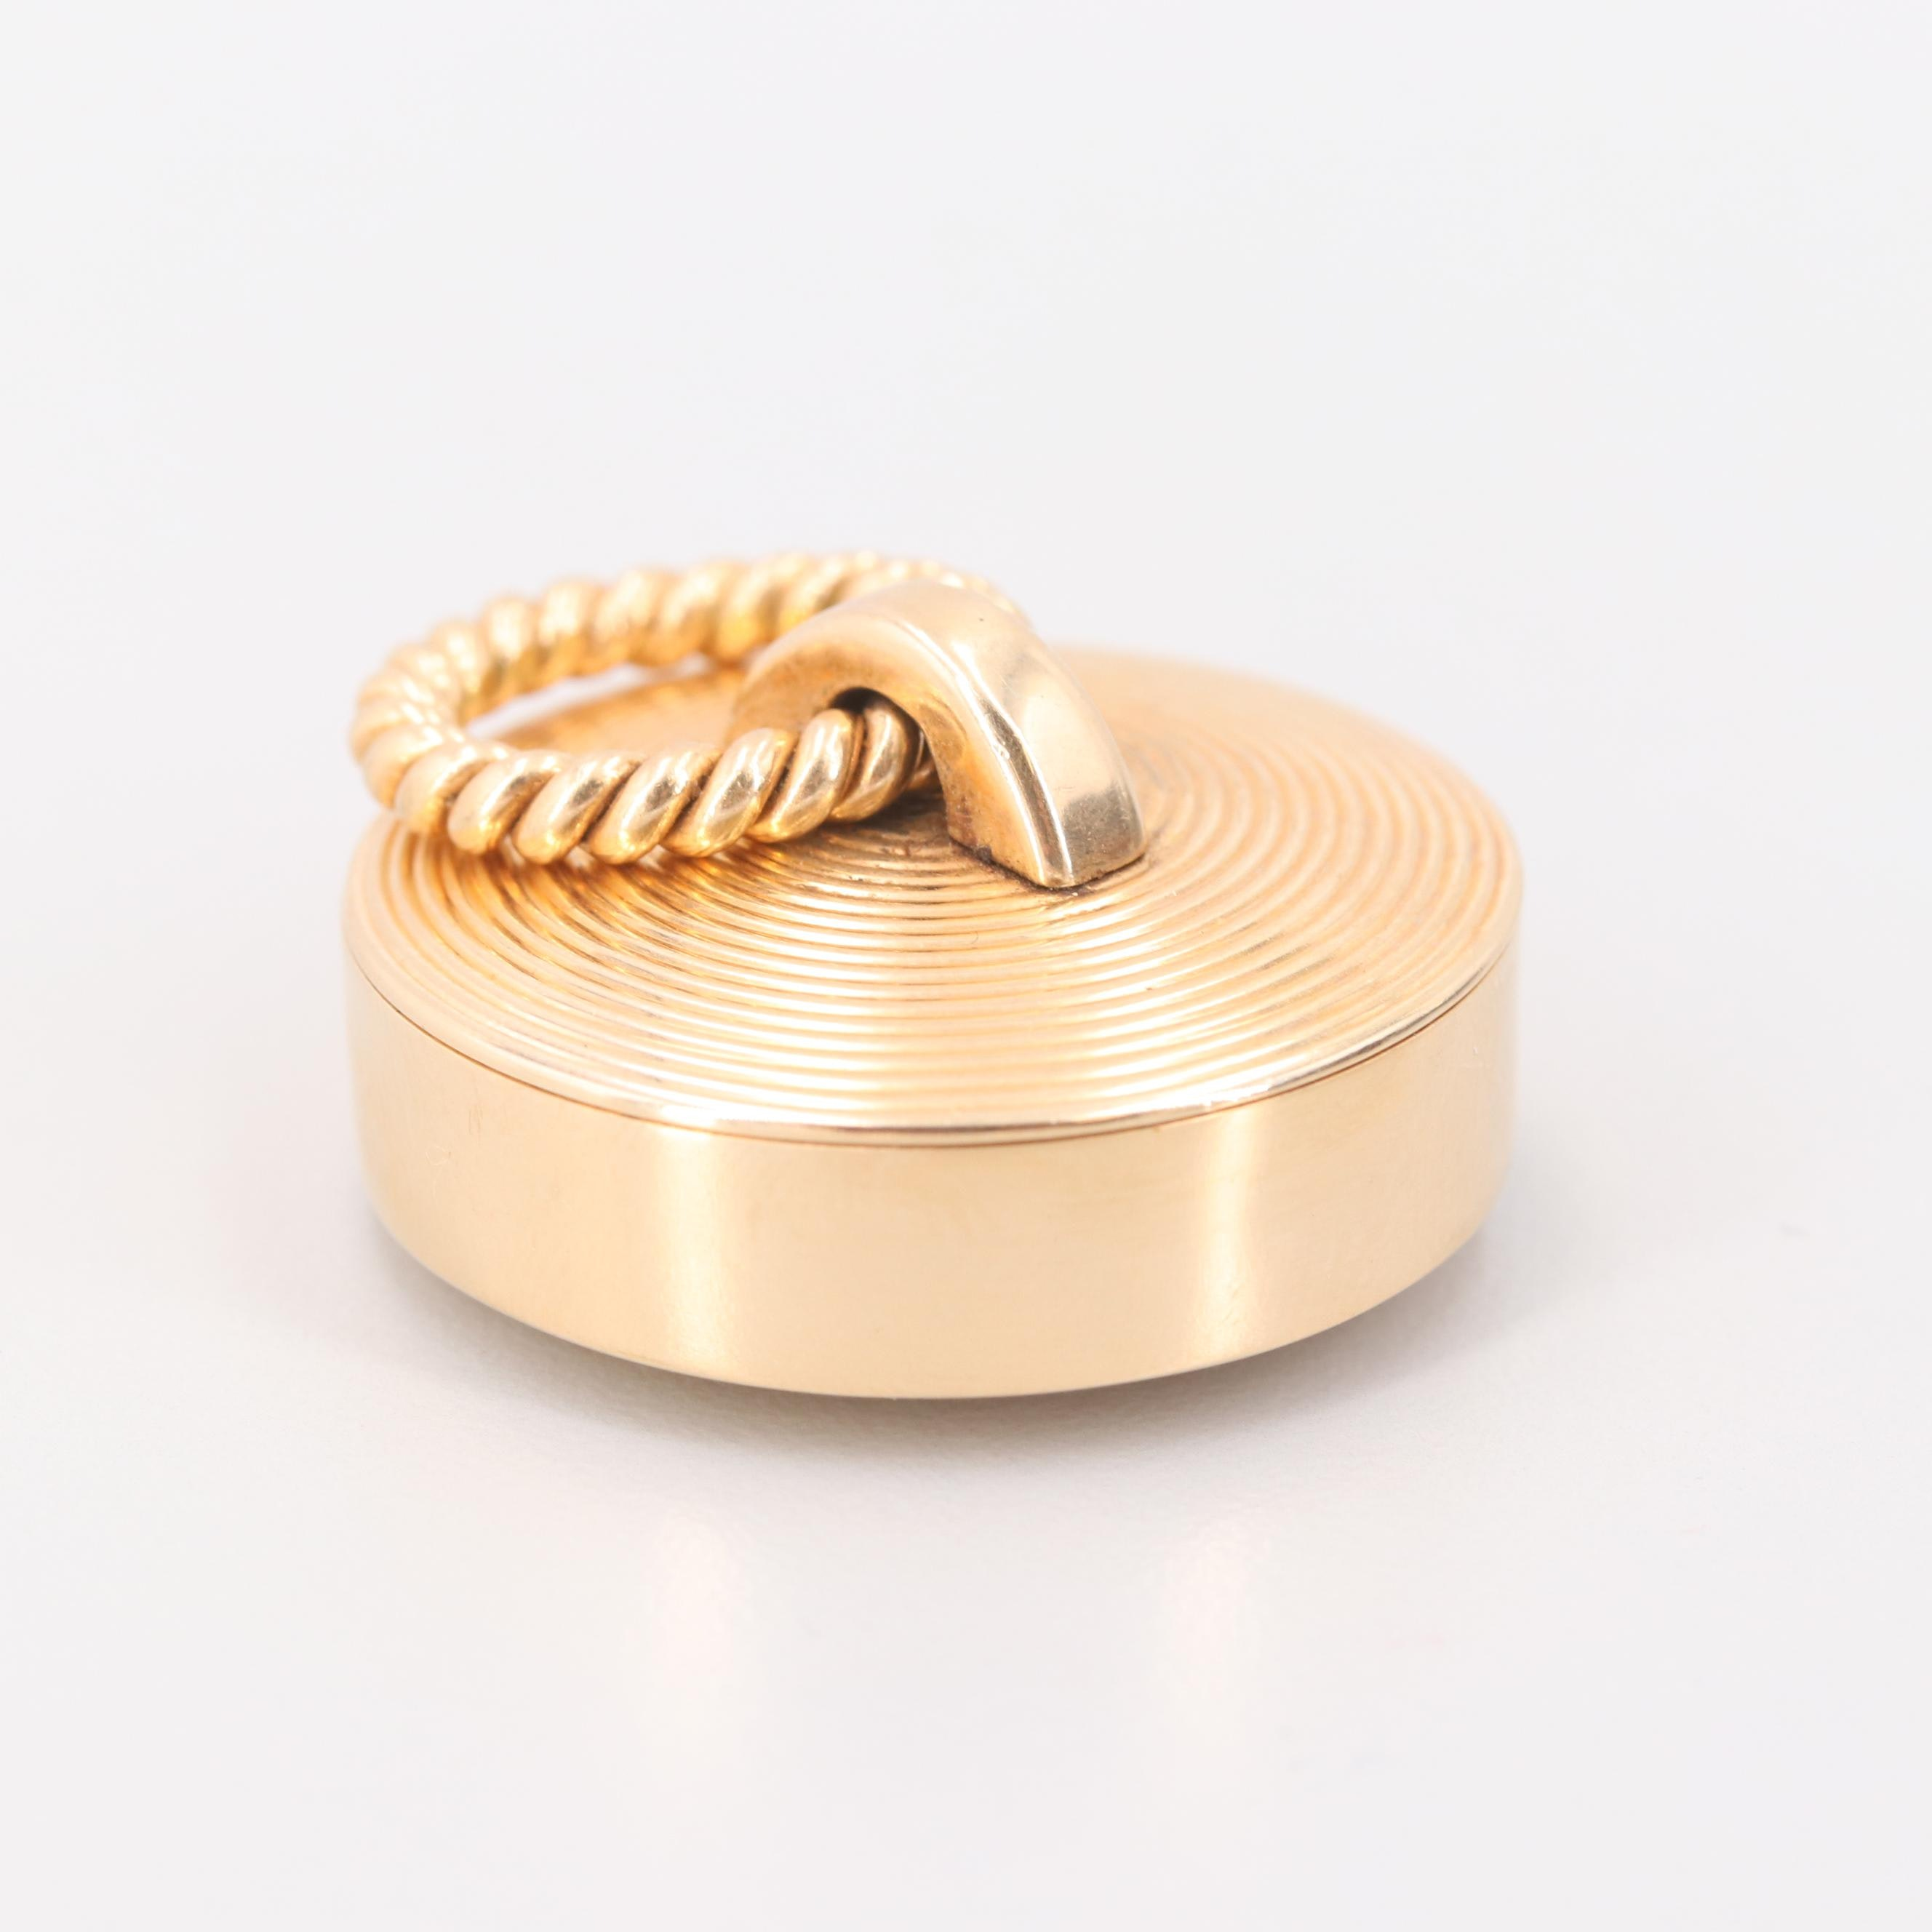 Vintage Cartier 14K Yellow Gold Round Pill Box